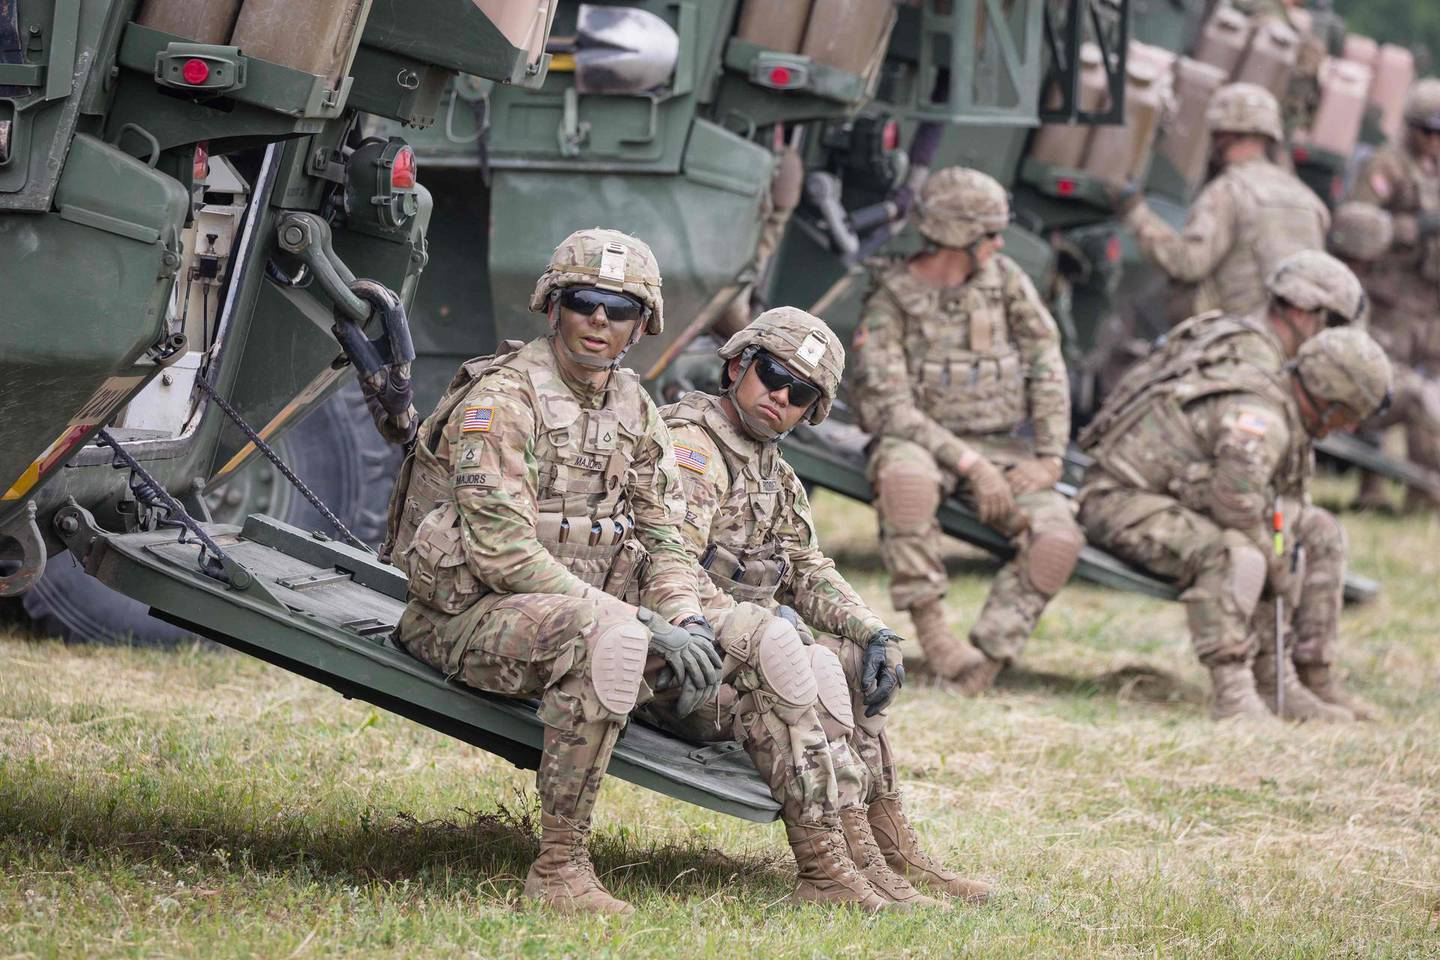 (FILES) In this file photo taken on June 16, 2017 US Soldiers are seen during NATO Saber Strike military exercises  in Orzysz, Poland.  Poland hopes to receive more US troops, Prime Minister Mateusz Morawiecki said on June 6, 2020, after the Wall Street Journal reported that Washington plans to slash its military presence in Germany. / AFP / -